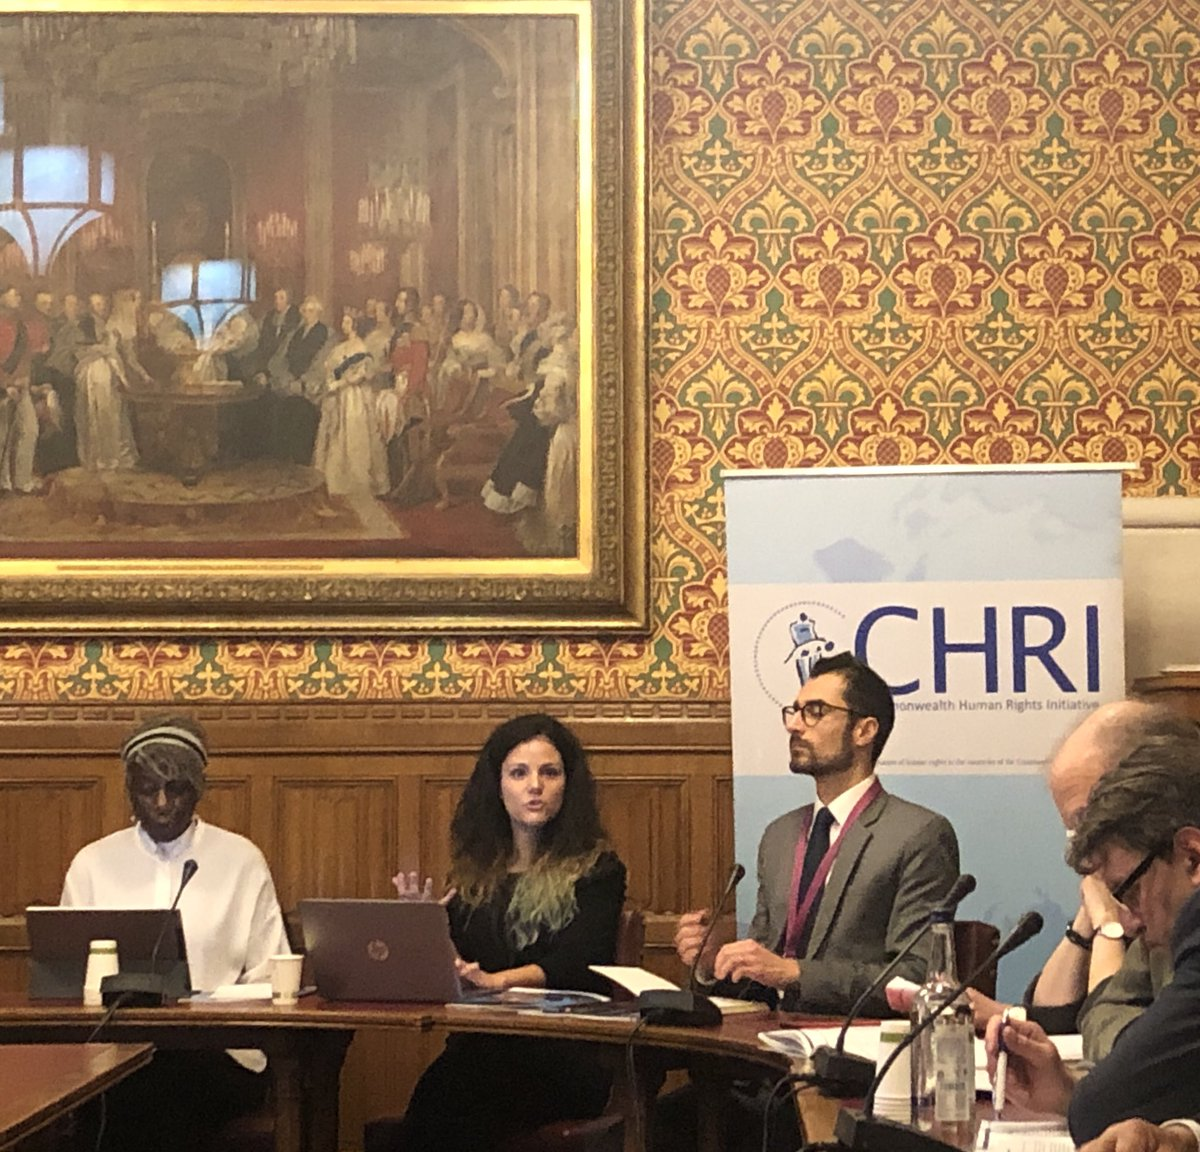 Stef Monaco of @chri_uk introduces the new #Commonwealth indicators and the four key areas for action if #ourCommonwealth is to achieve the ambition of #CHOGM2018